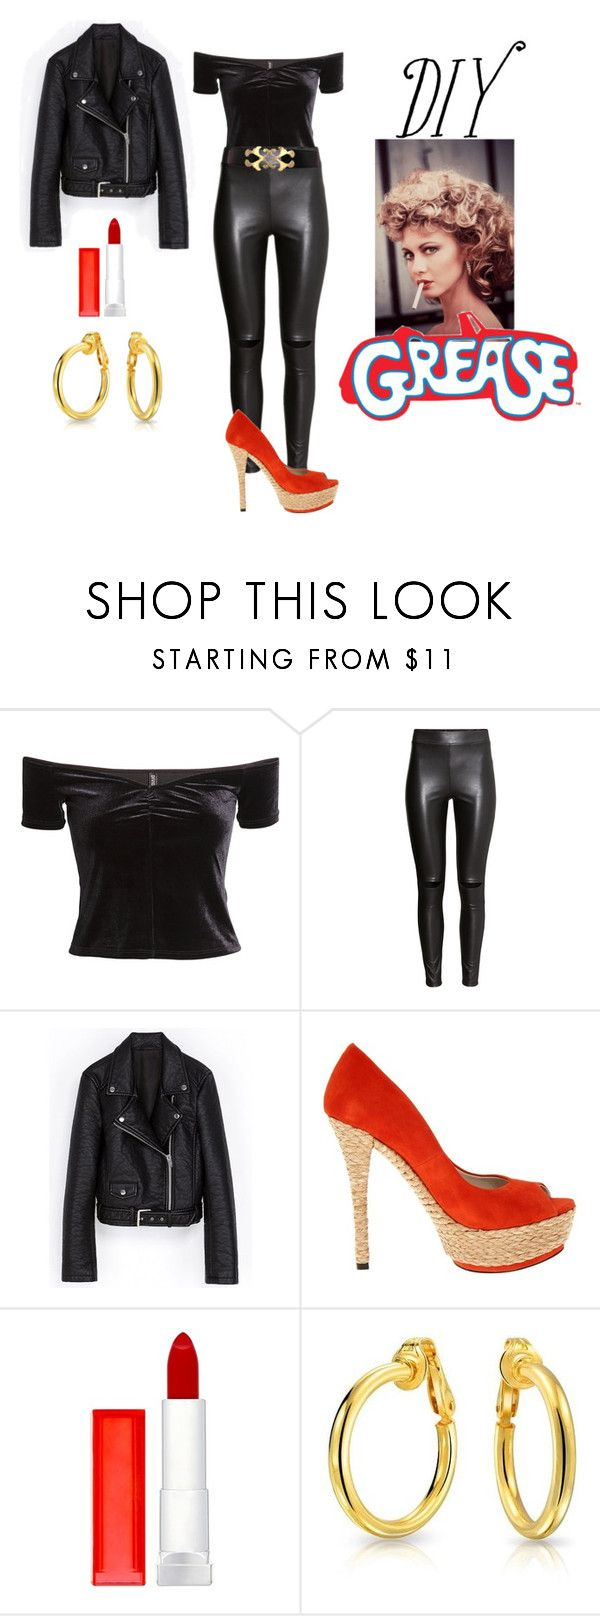 """Sandy (Grease) DIY costume"" by lavalledanika ❤ liked on Polyvore featuring H&M, Coloriffics, Maybelline, Bling Jewelry and diycostume"